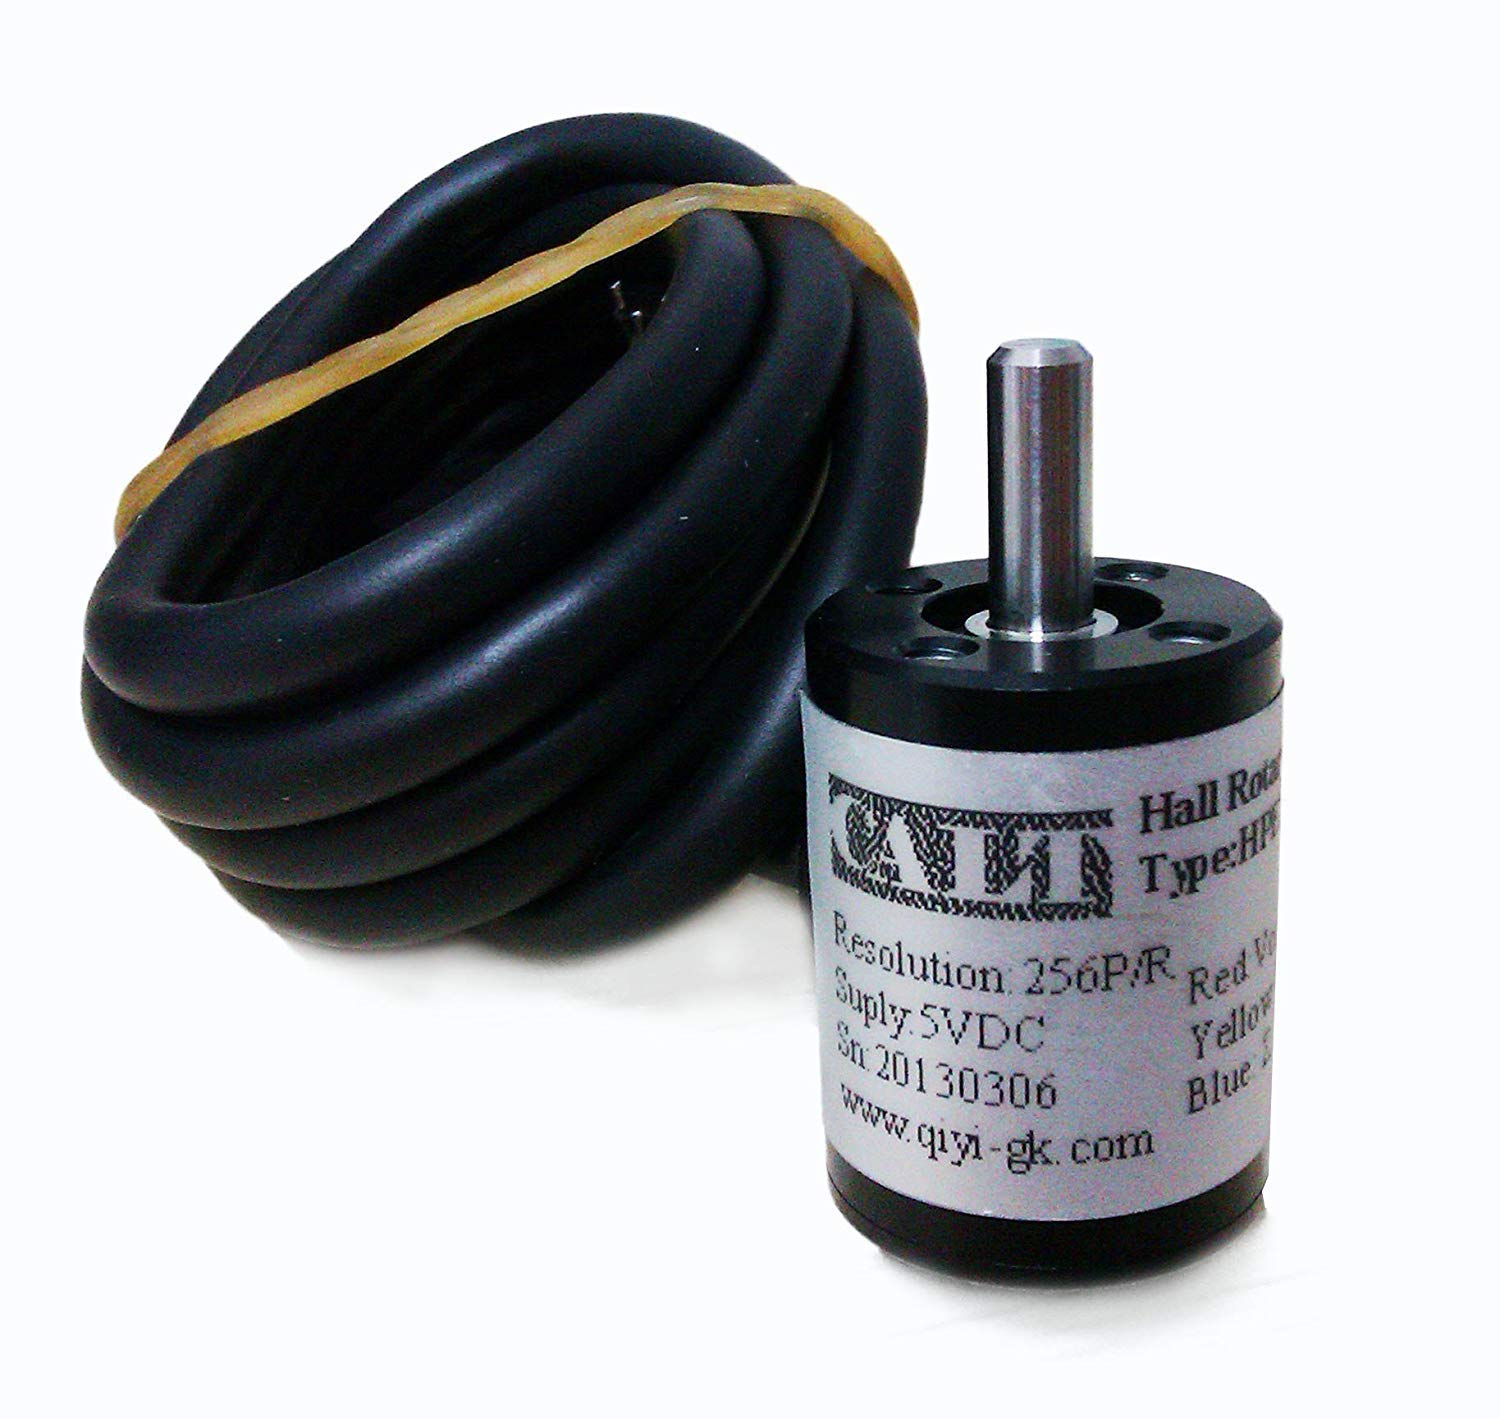 CALT HAE18 14 Bit 16384 Resolution Hall Magnetic Angle Rotary Encoder SSI Absolute Type (5V 14bit)